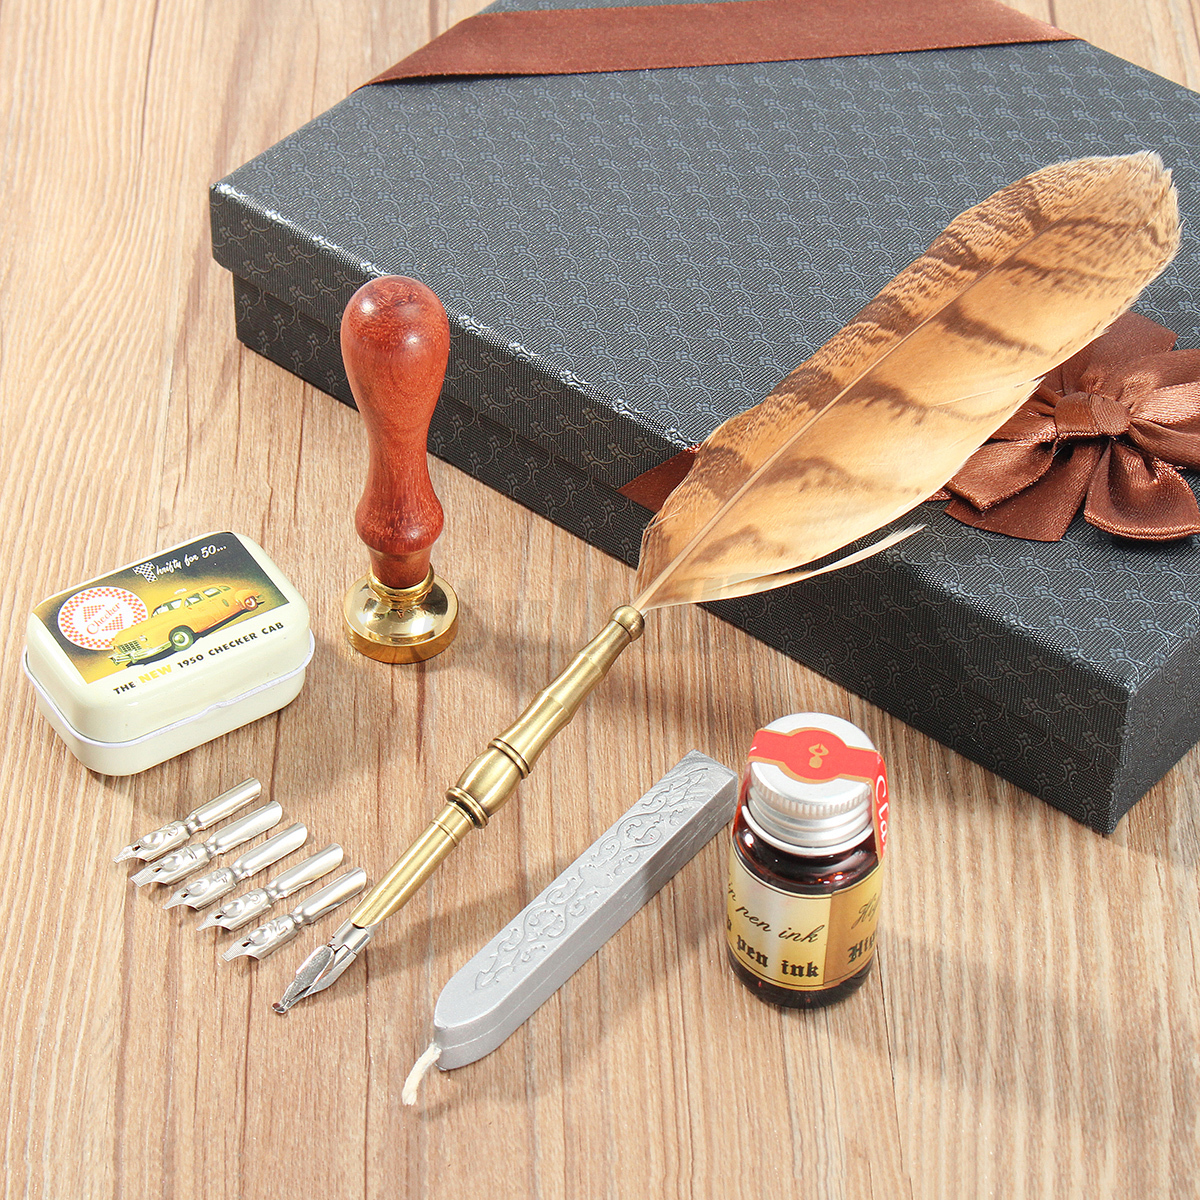 Vintage-Quill-Feather-Dip-Pen-Writing-Ink-Luxury-Stationery-Set-with-Gift-Box